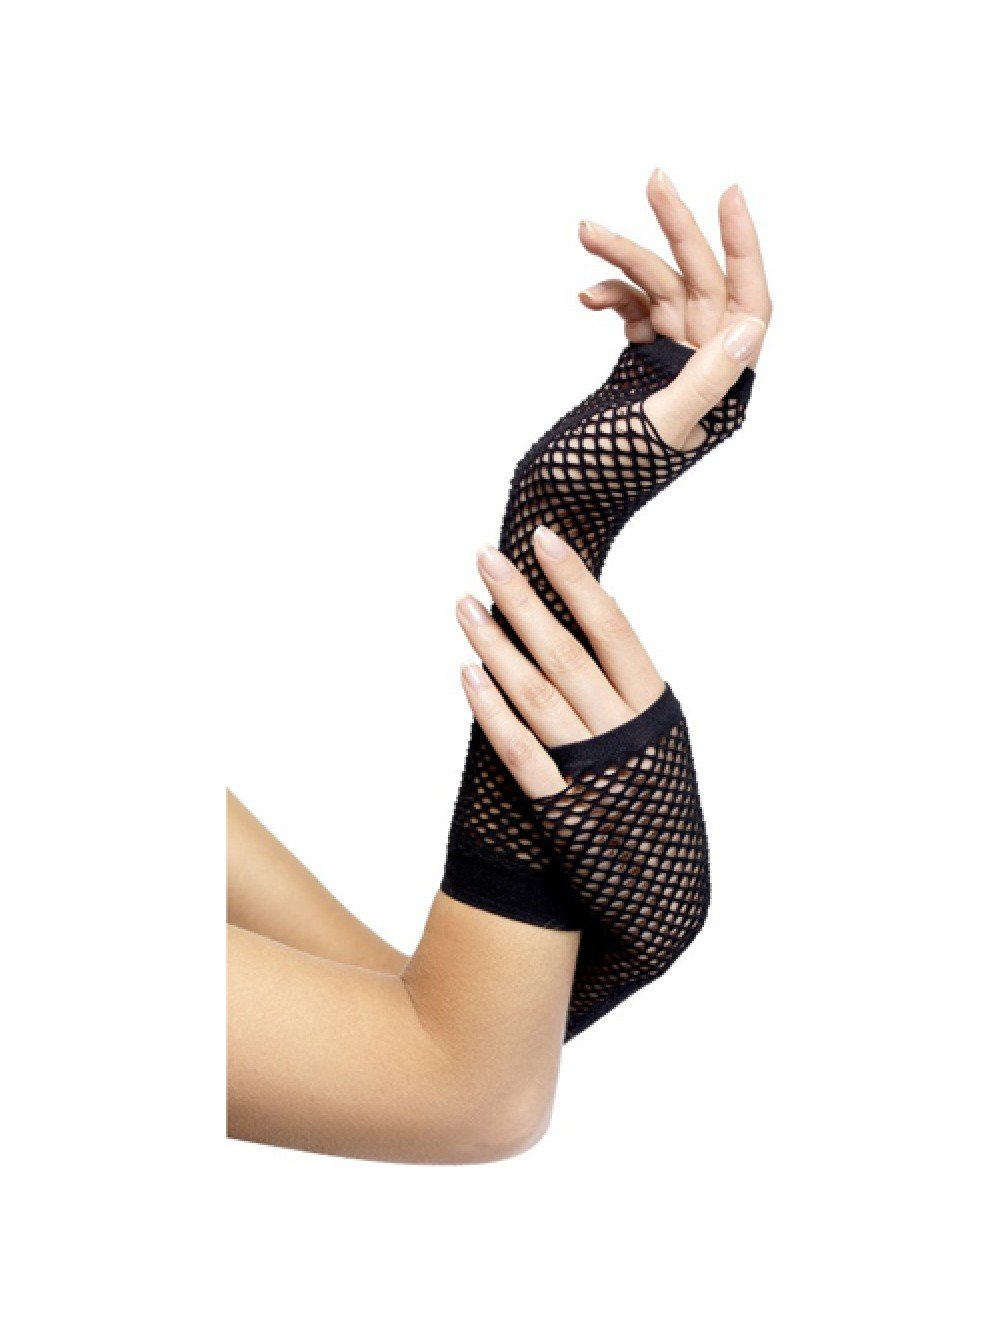 Fishnet Gloves Long Black 5020570348727